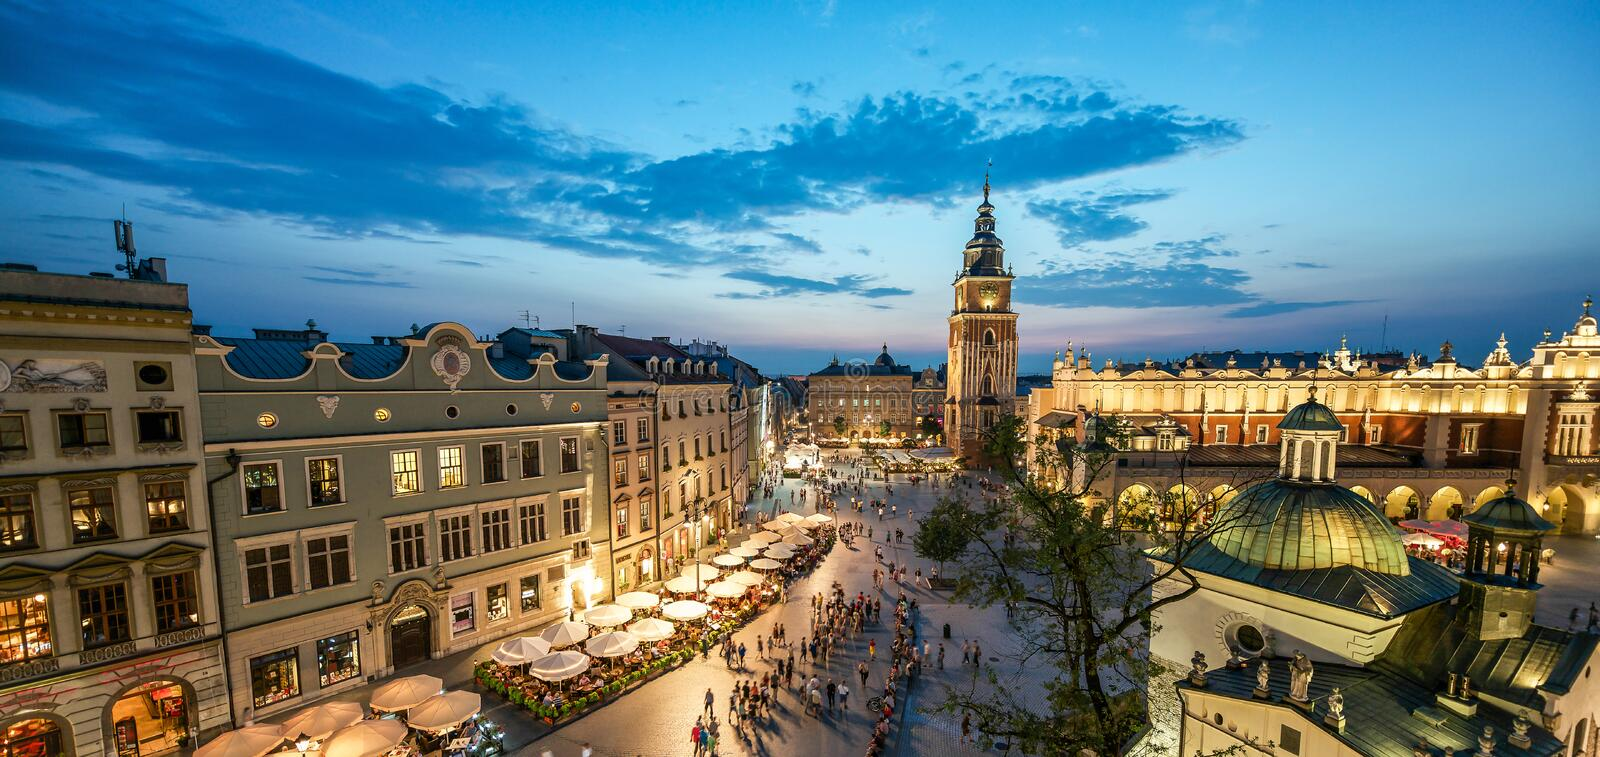 View of Krakow, Poland at sunset stock images